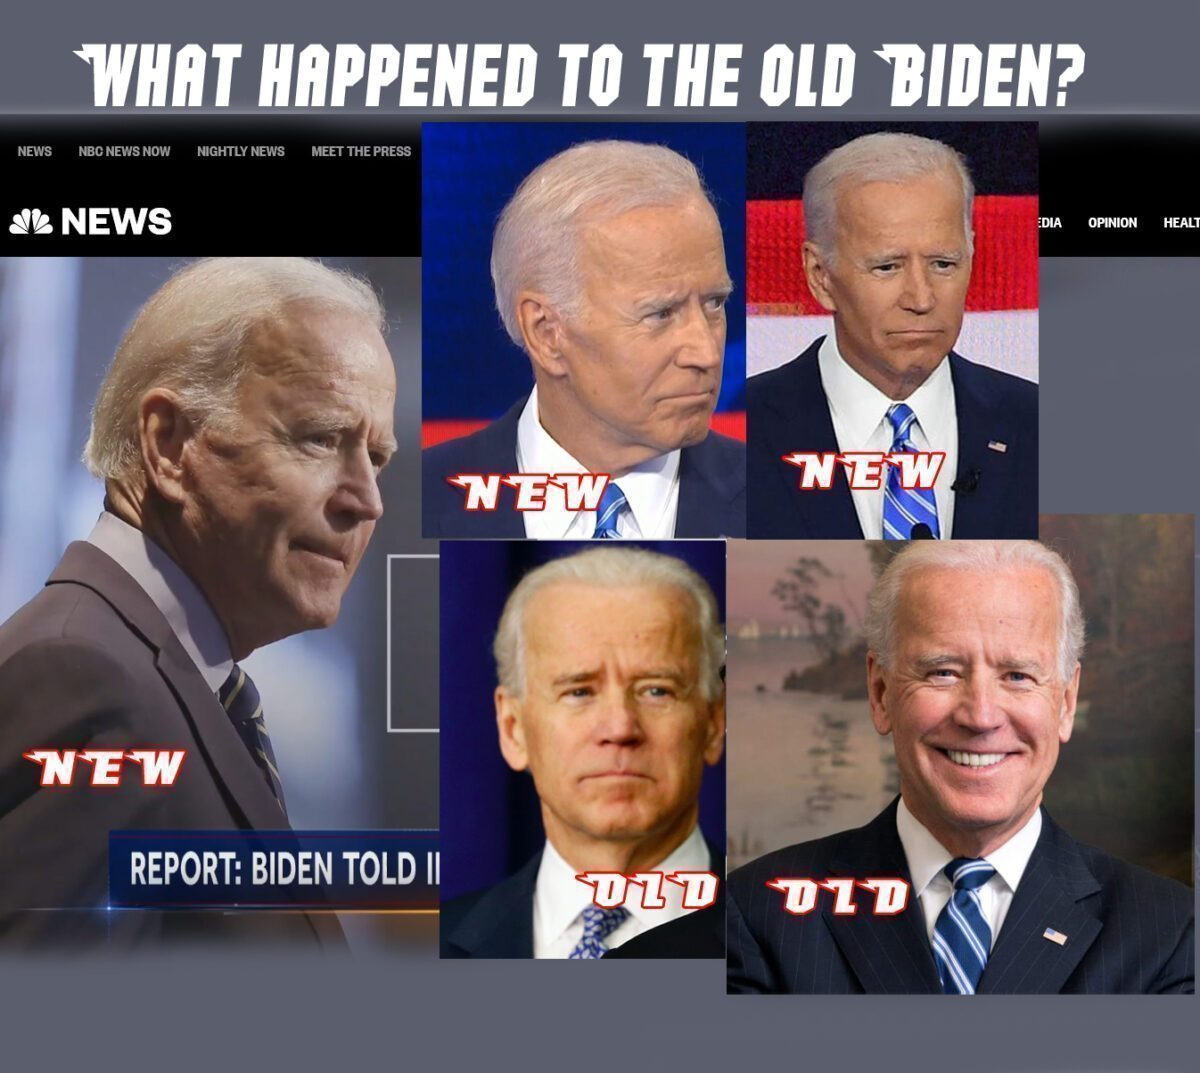 Biden an A.I. Chipping Gone Awry? Dementia? Or Something Else?